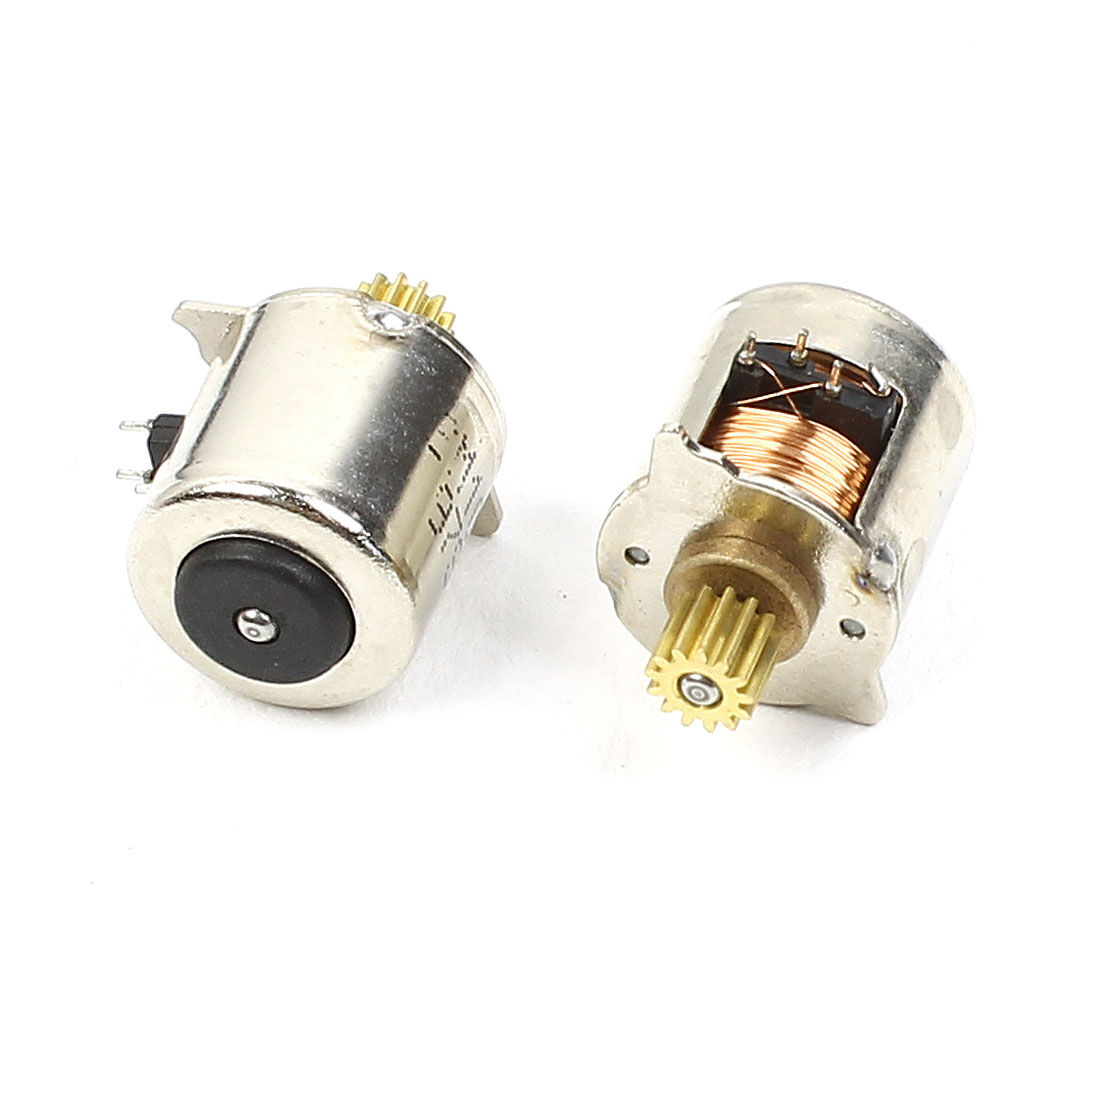 2pcs Brass Gear Silver Tone 10mm Diameter 2 Phase 4 Wire Stepper Motor